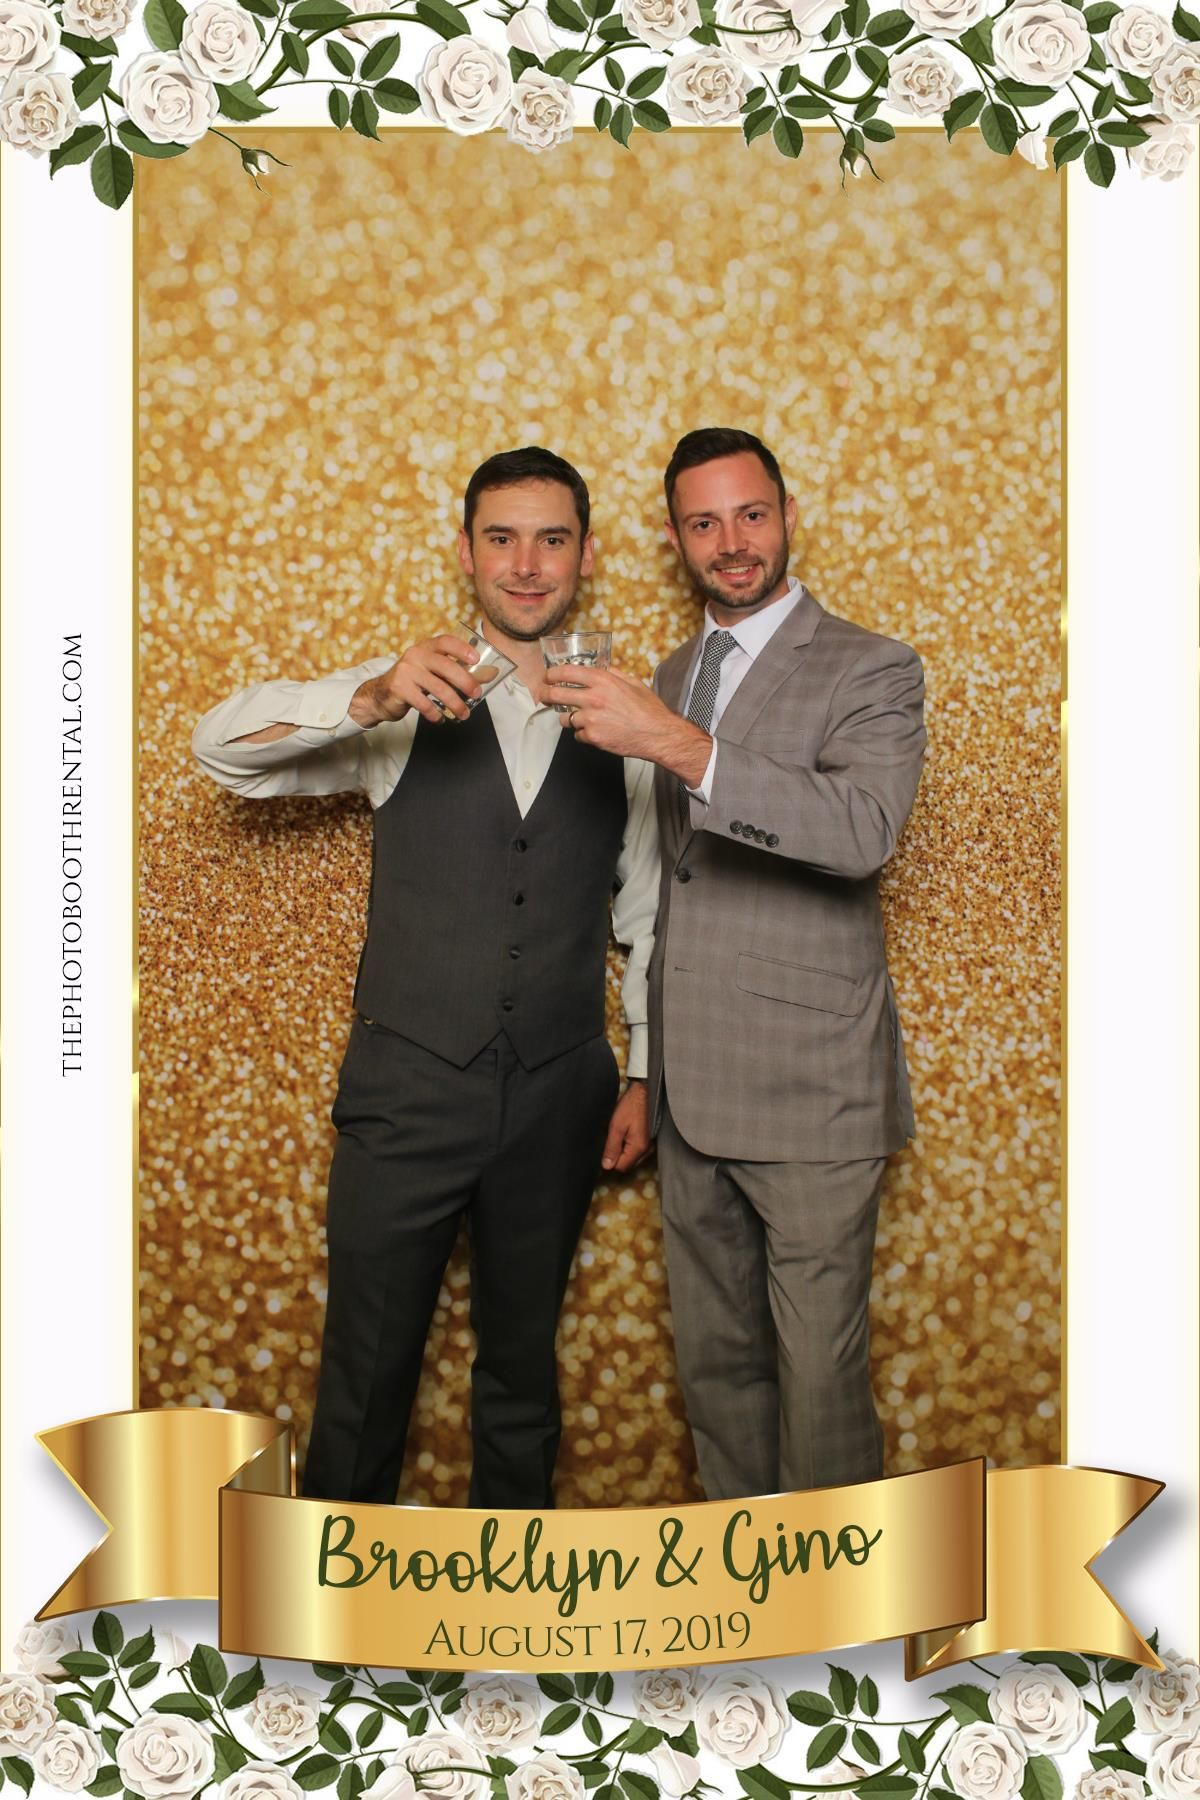 Wedding Crashers 2 Wedding Crashers Wedding Photo Booth